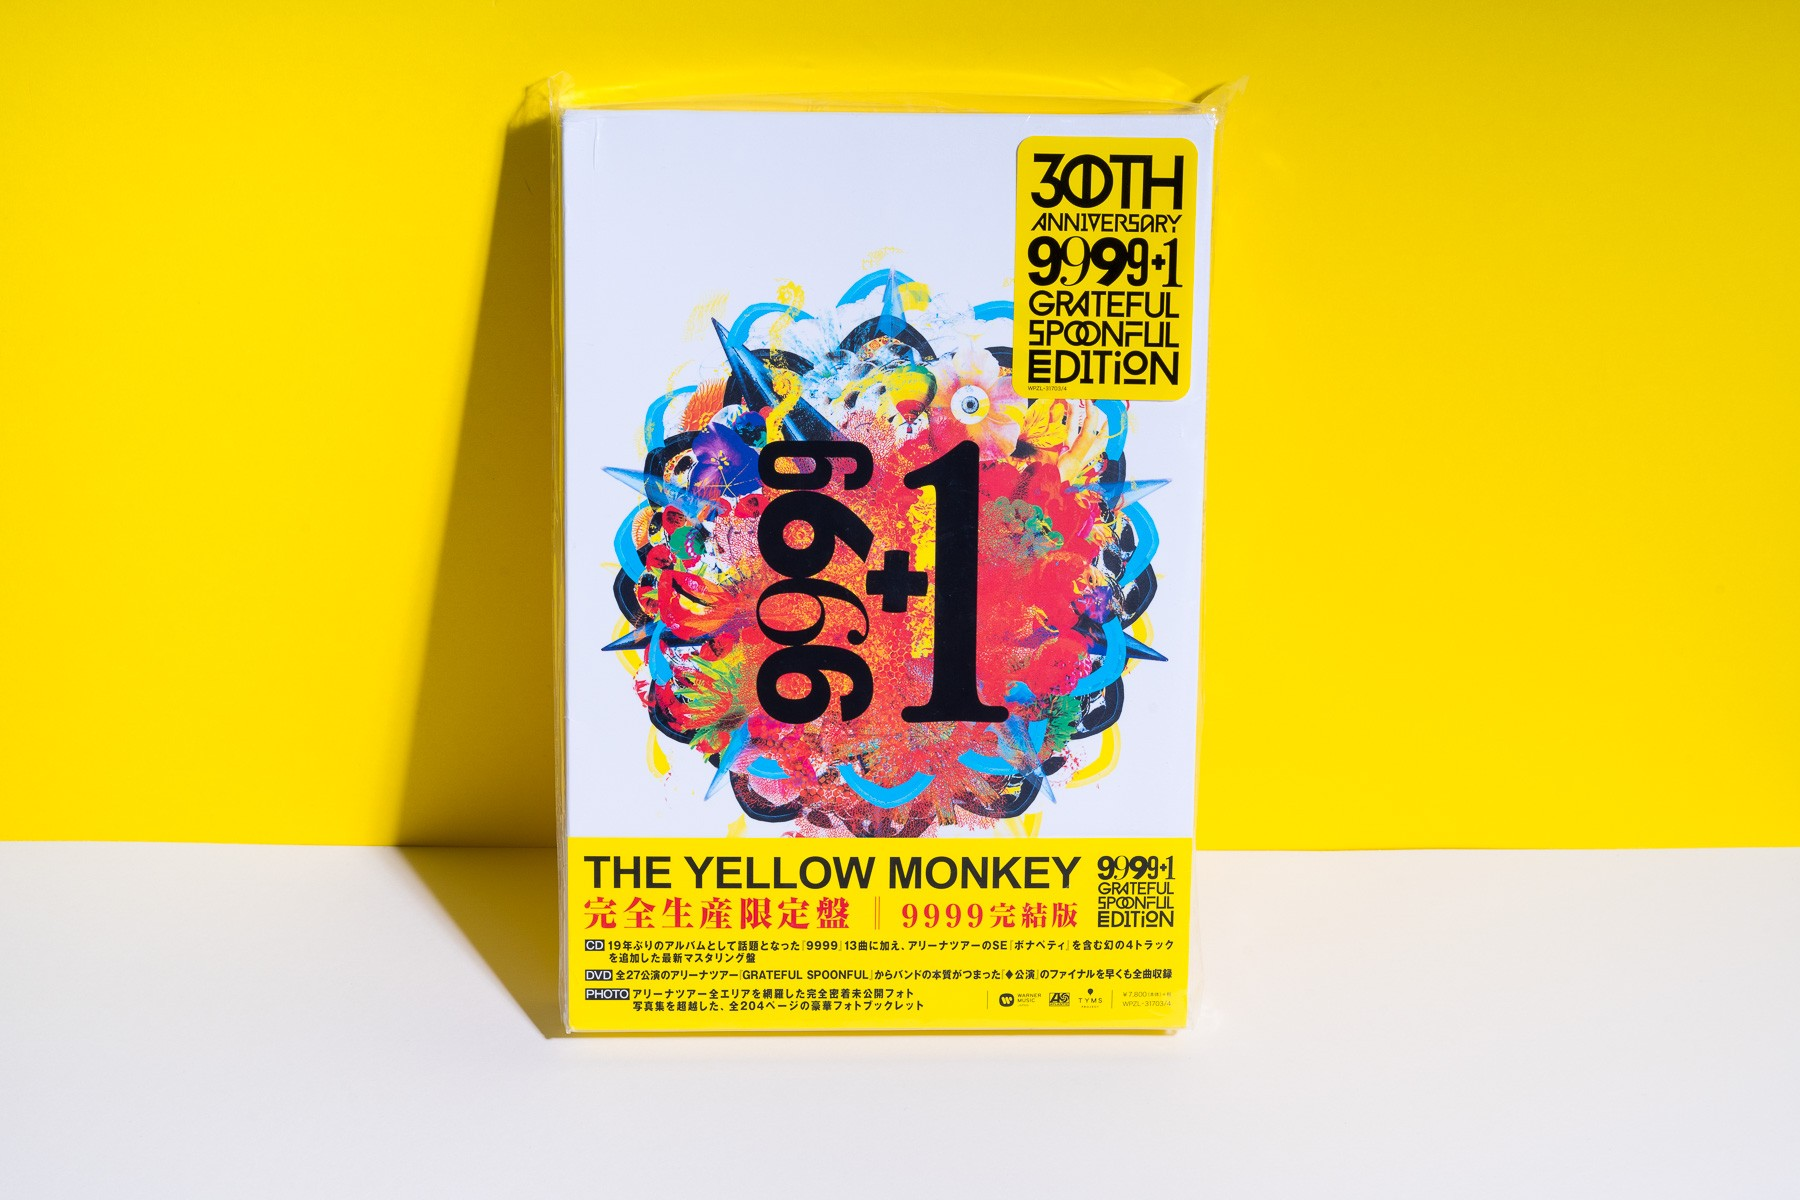 The Yellow Monkey. 9999 1 Grateful Spoonful. 2